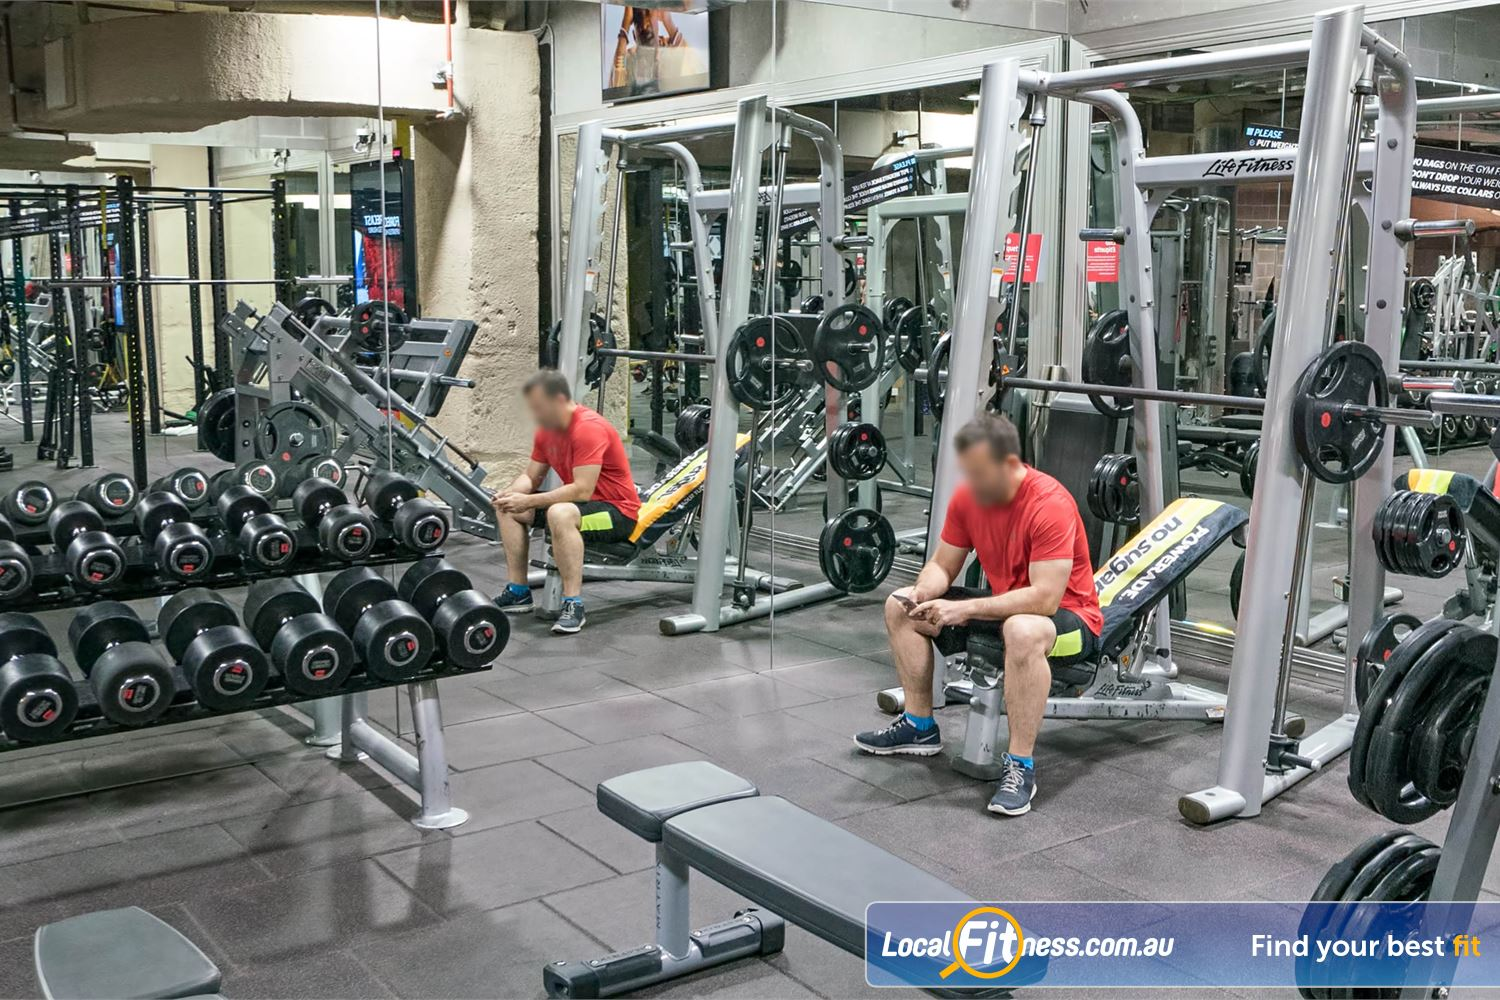 Fitness First Platinum Shelley St Near Strawberry Hills Fully equipped with a smith machine, dumbbell, benches and more.